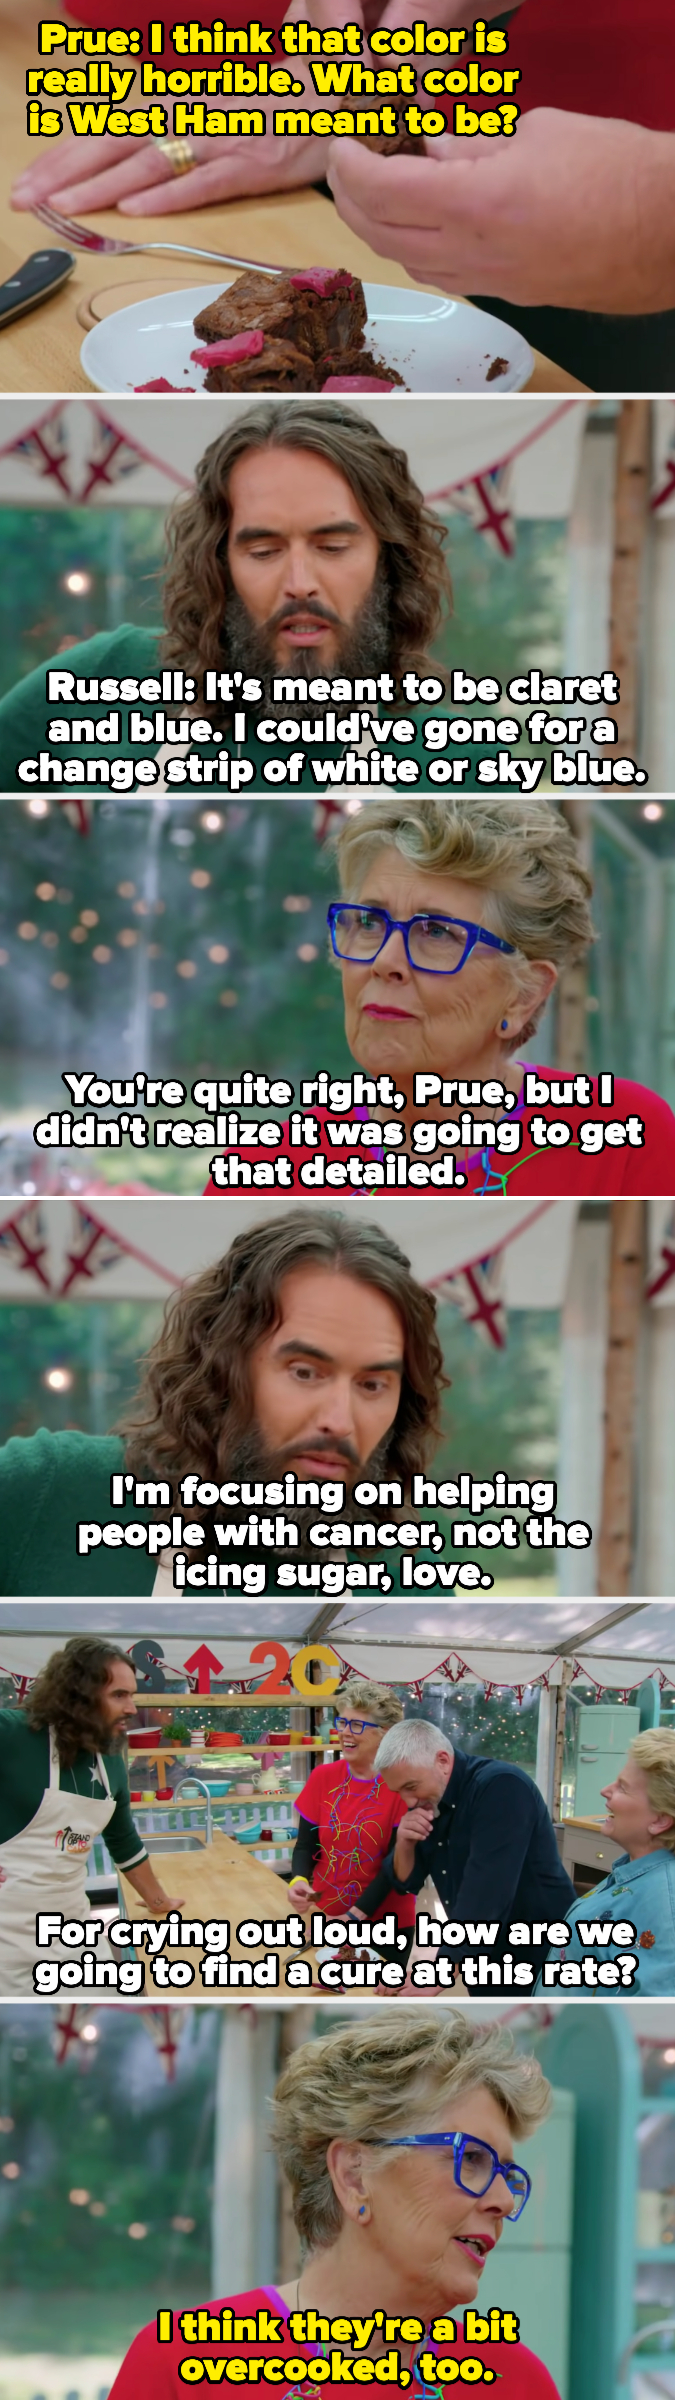 Brand asks how they're going to find a cure for cancer while they're worrying about icing sugar